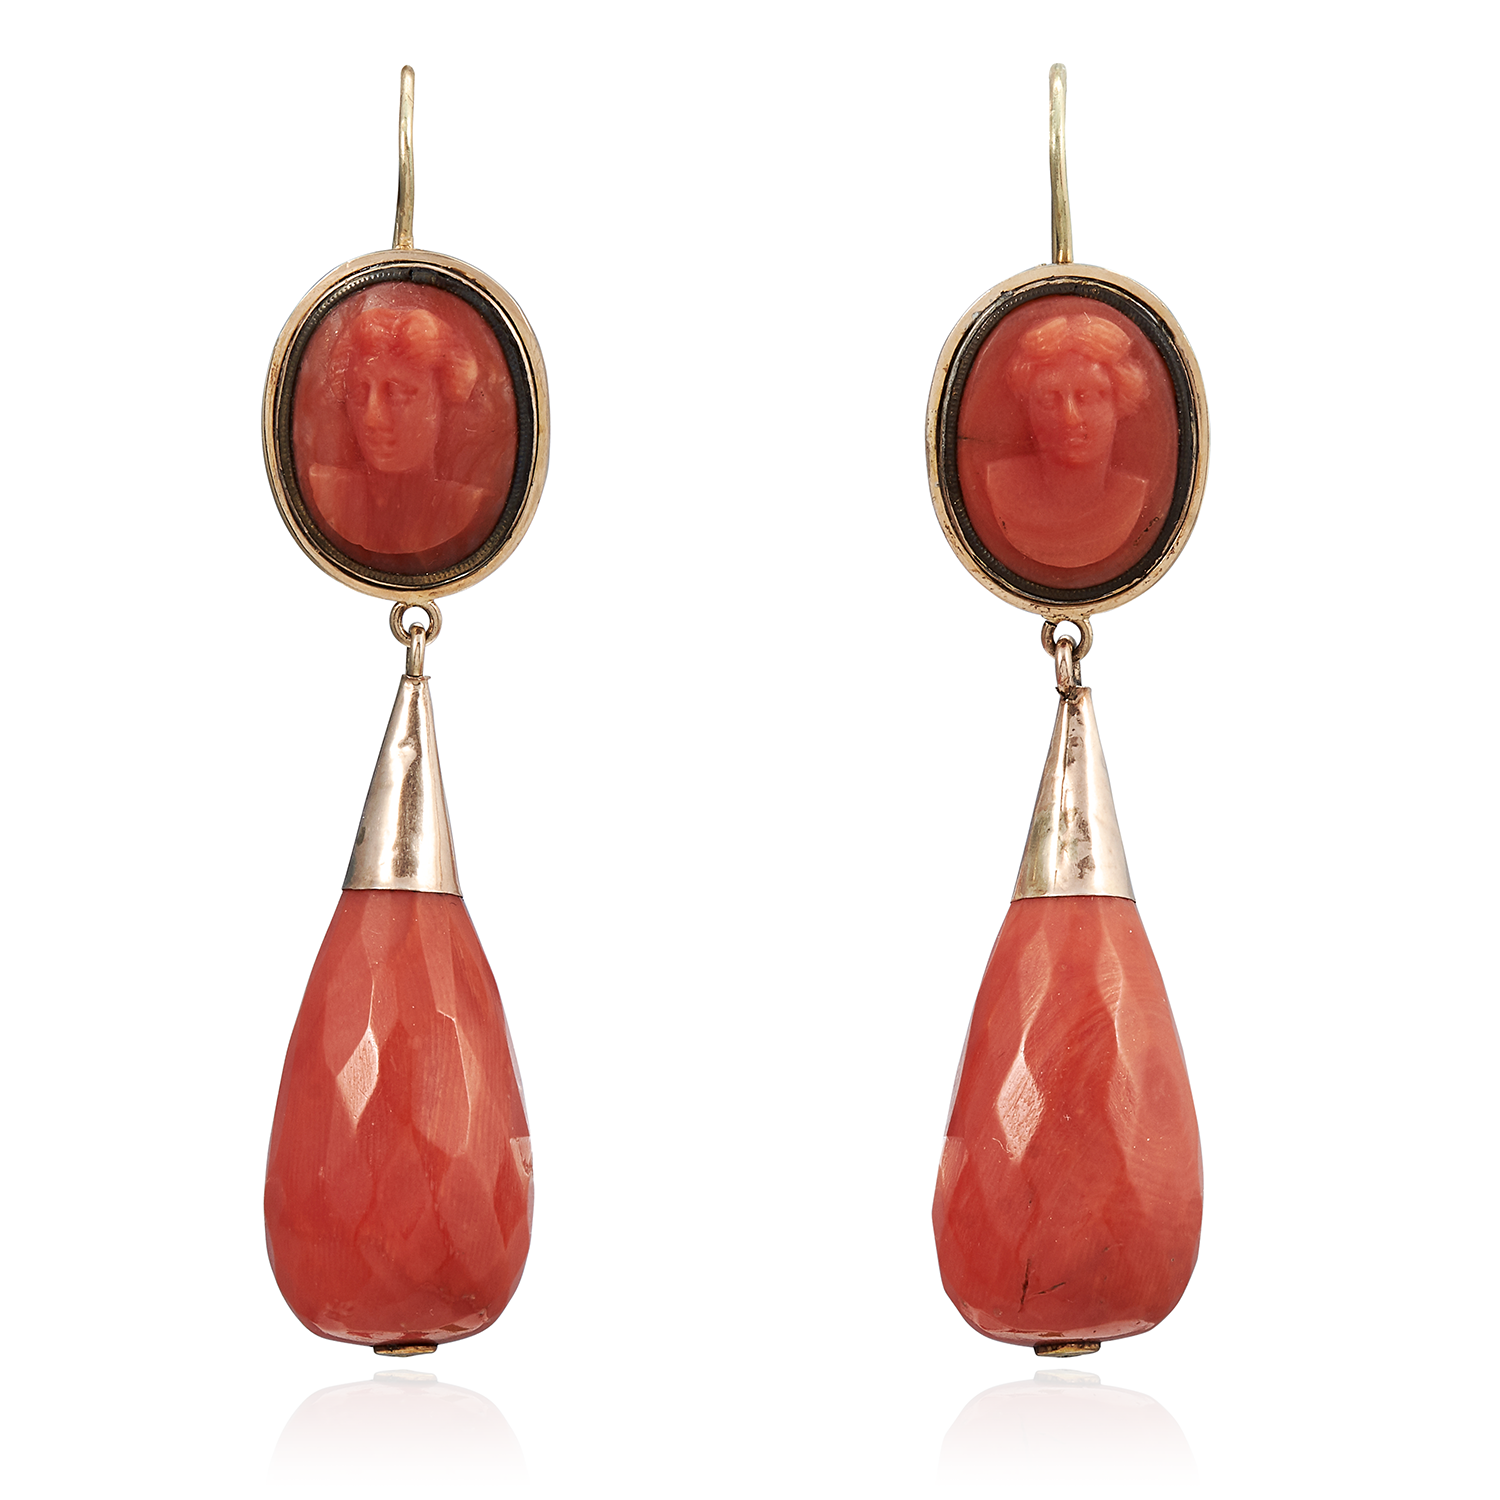 Los 44 - A PAIR OF ANTIQUE CORAL CAMEO DROP EARRINGS, EARLY 19TH CENTURY in high carat yellow gold, each